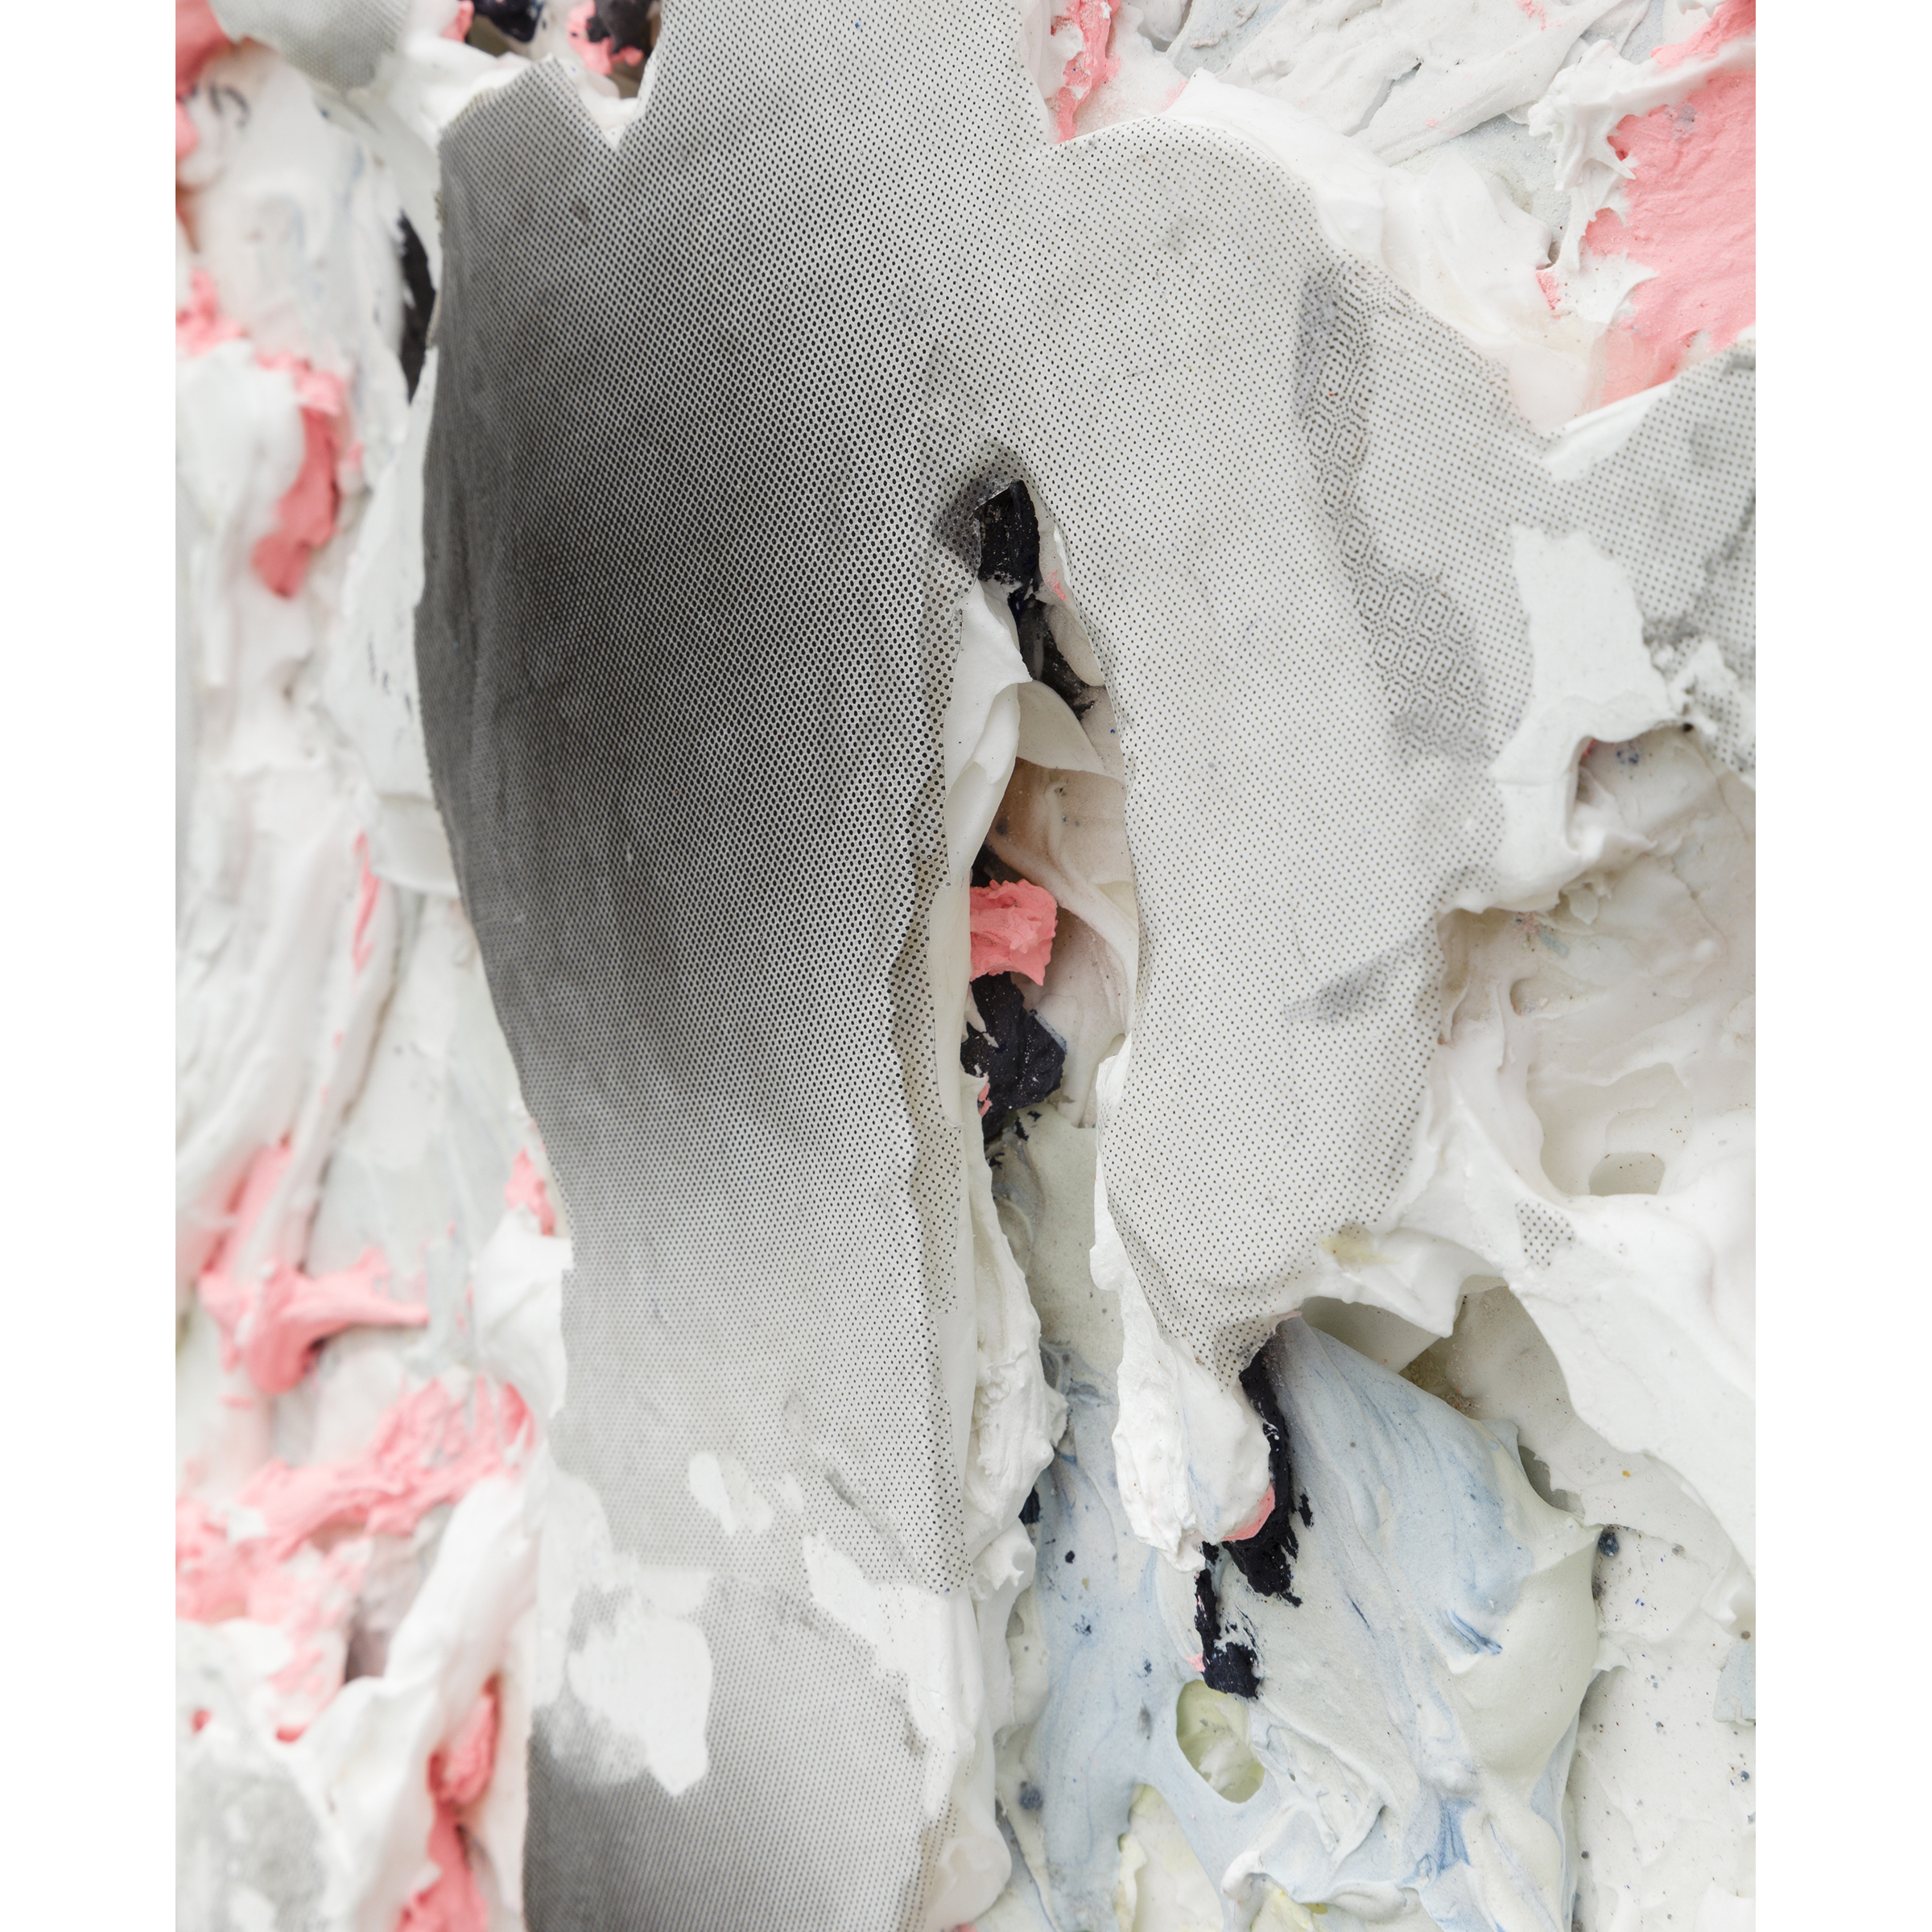 Nicolas Roggy, Untitled  (detail), 2014,primer, modeling paste, pigment,acrylic paint, print on PVC,13.7 x 17.7 x 2.3 in